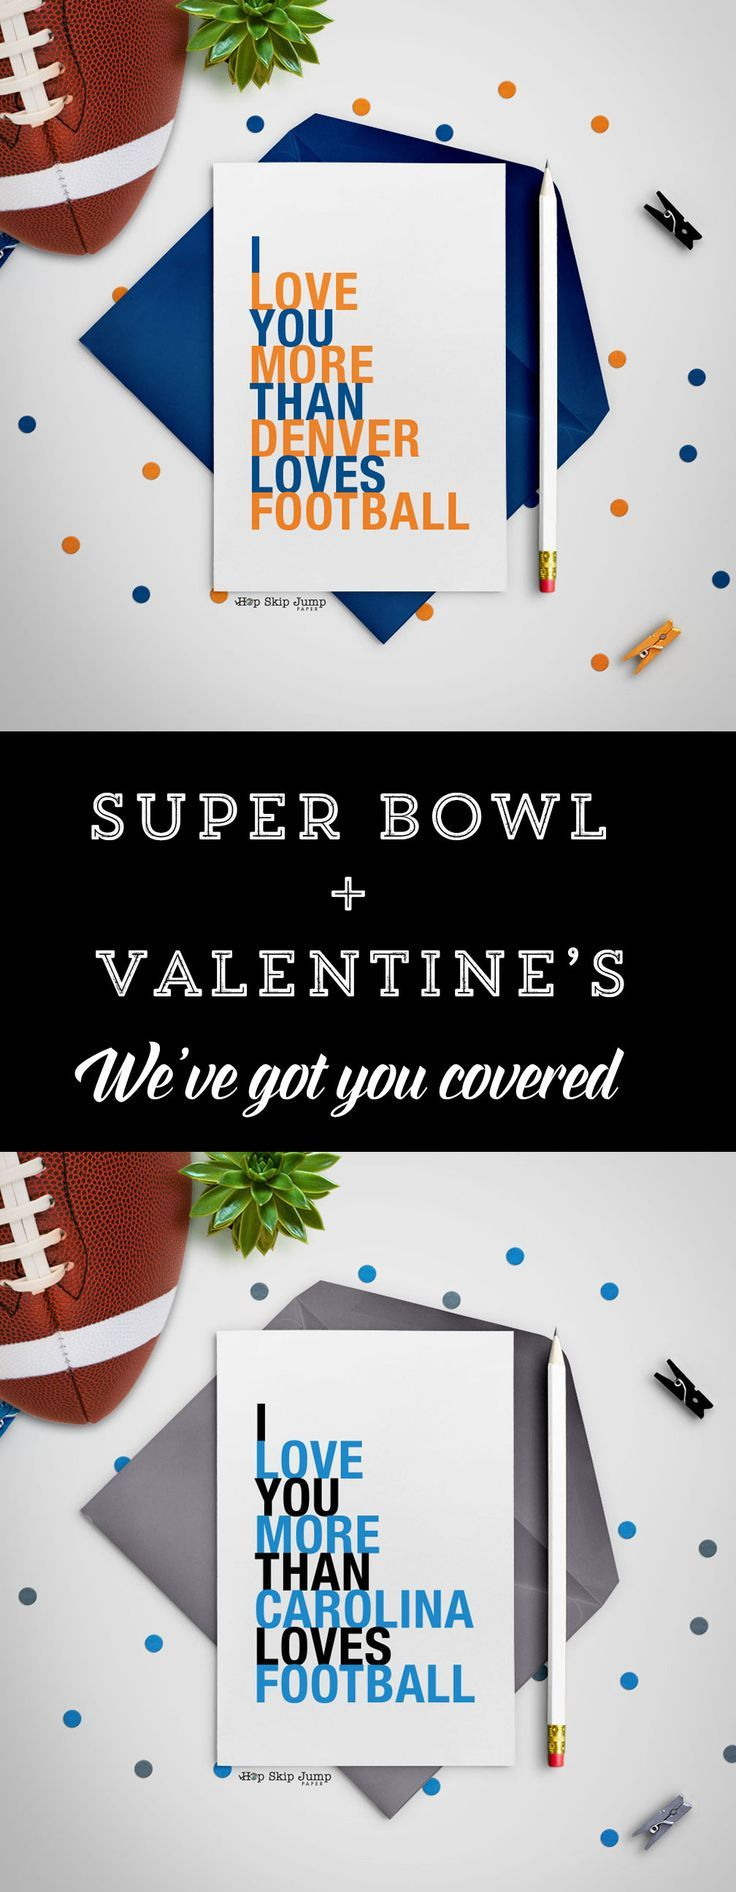 """Broncos? Panthers? Who are you rooting for this weekend?  After the game is all said and done, grab an """"I love you more than _____"""" victory card and send it to a loved one. Whether in sincerity or in a friendly rivalry, let HopSkipJumpPaper provide meaningful entertainment for you and your family long after the game is over."""